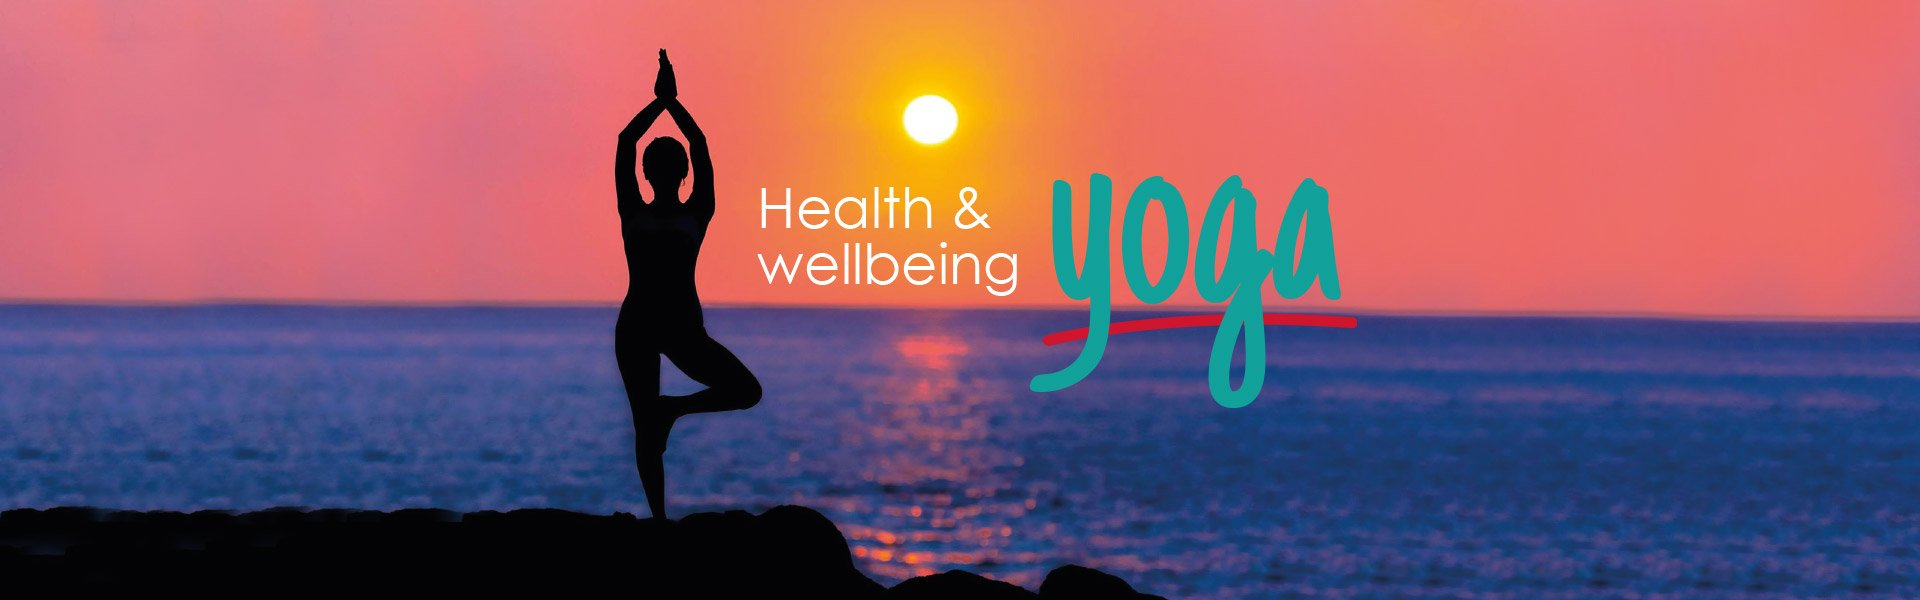 Office health & wellbeing yoga